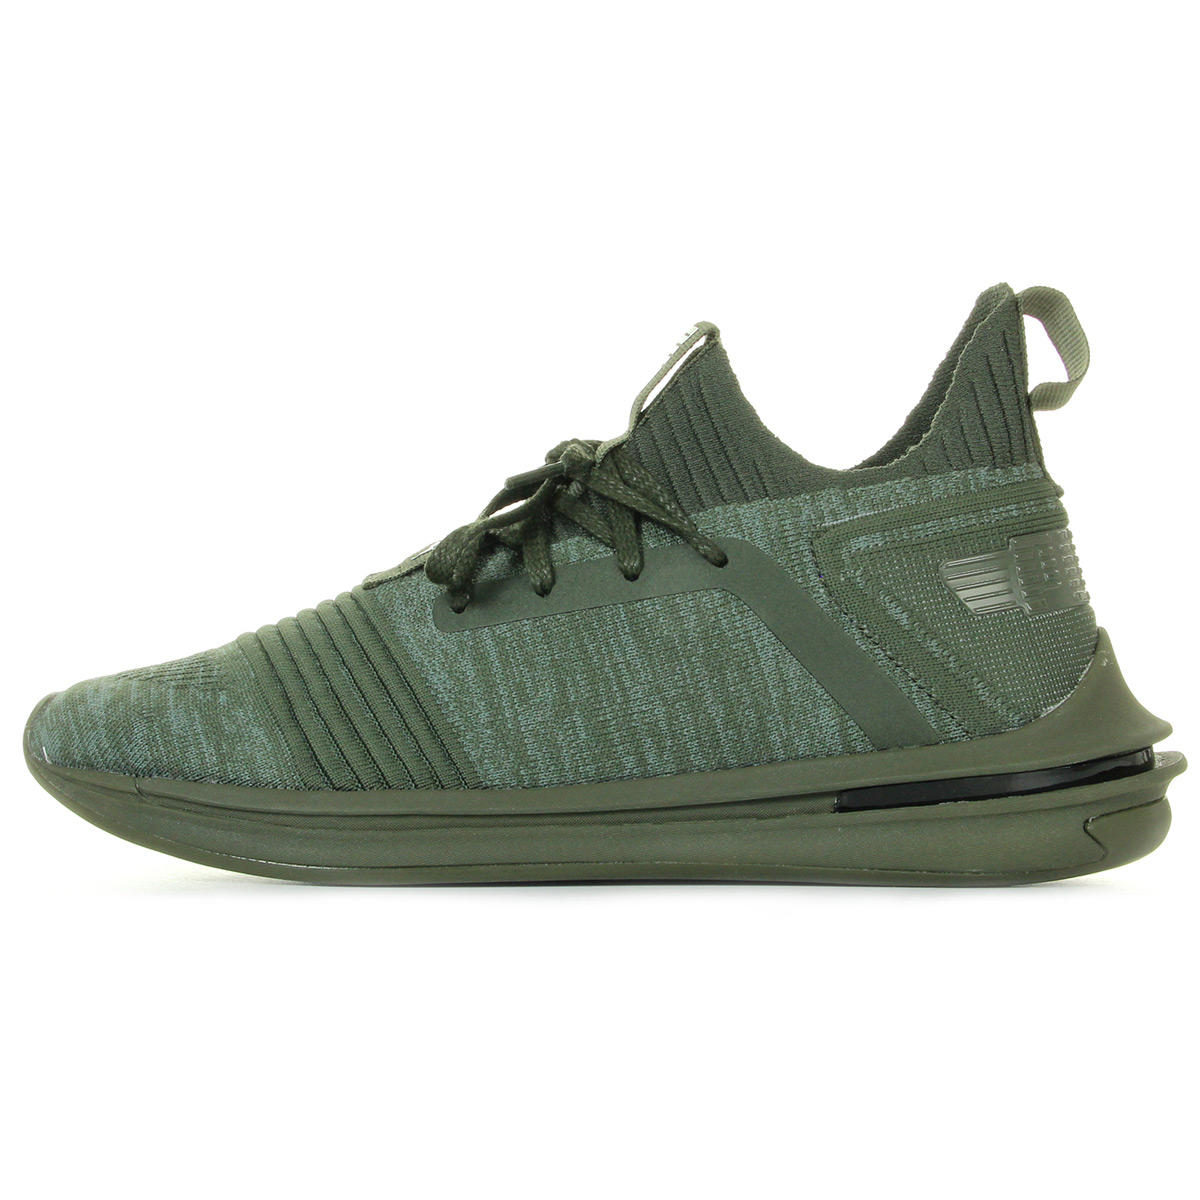 Puma IGNITE Limitless SR evoKNIT 19048403, Baskets mode homme